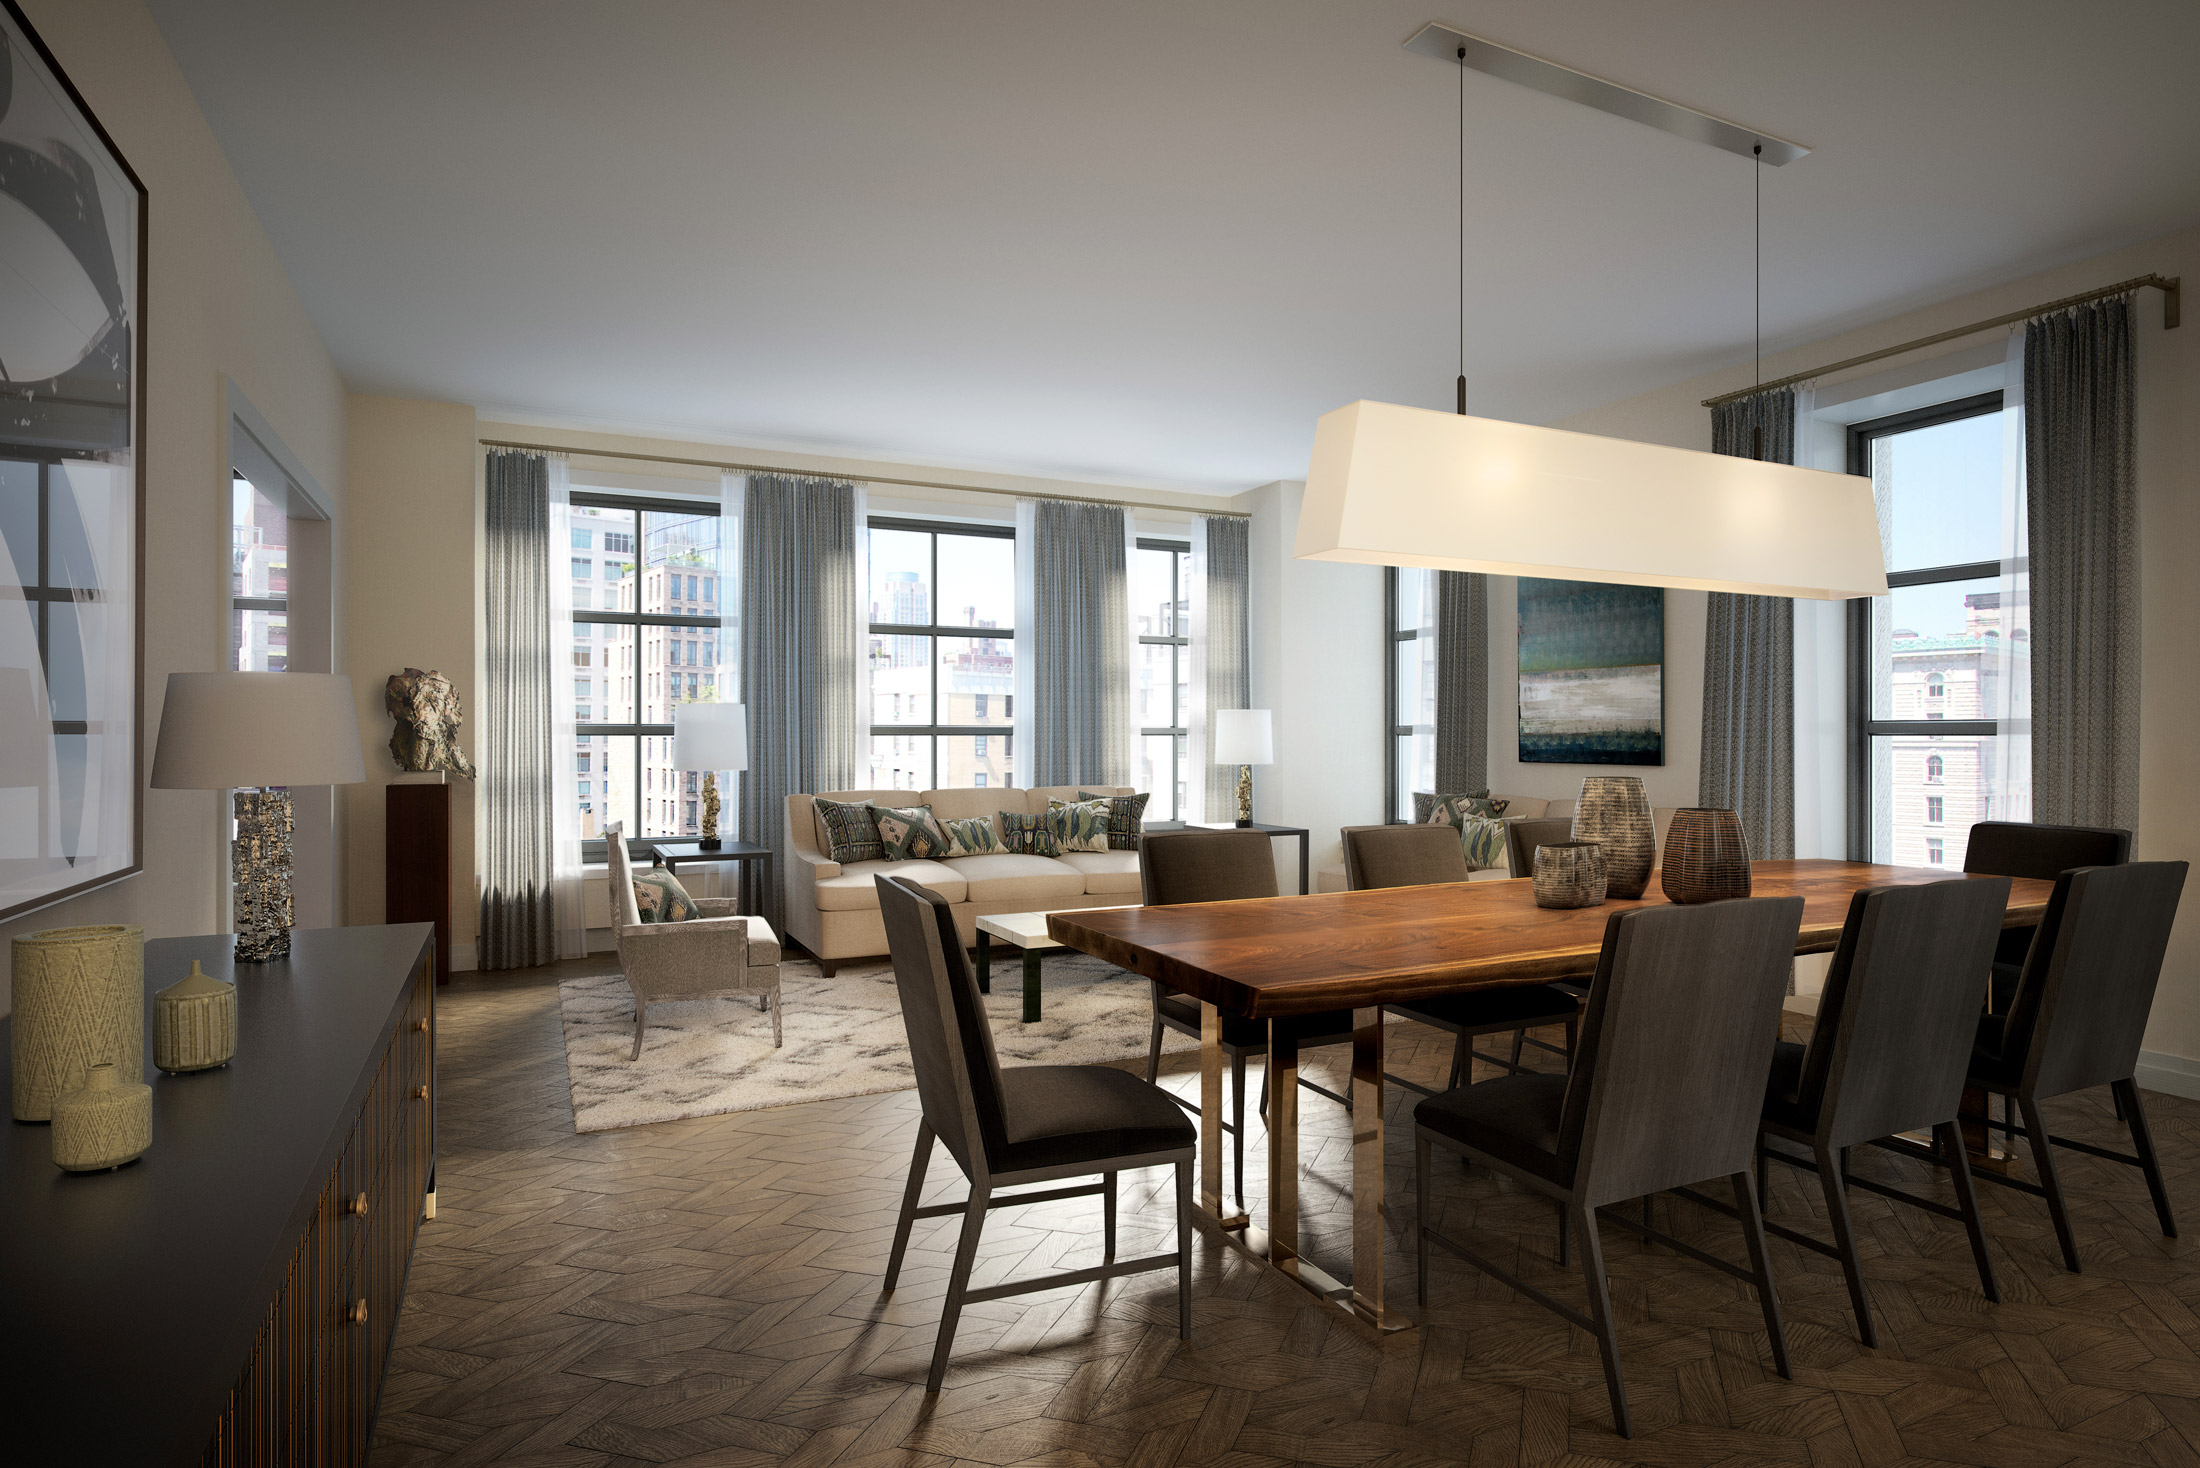 Architectural Rendering of the living room of the 207 West 79th Street project located on the Upper West Side, New York City